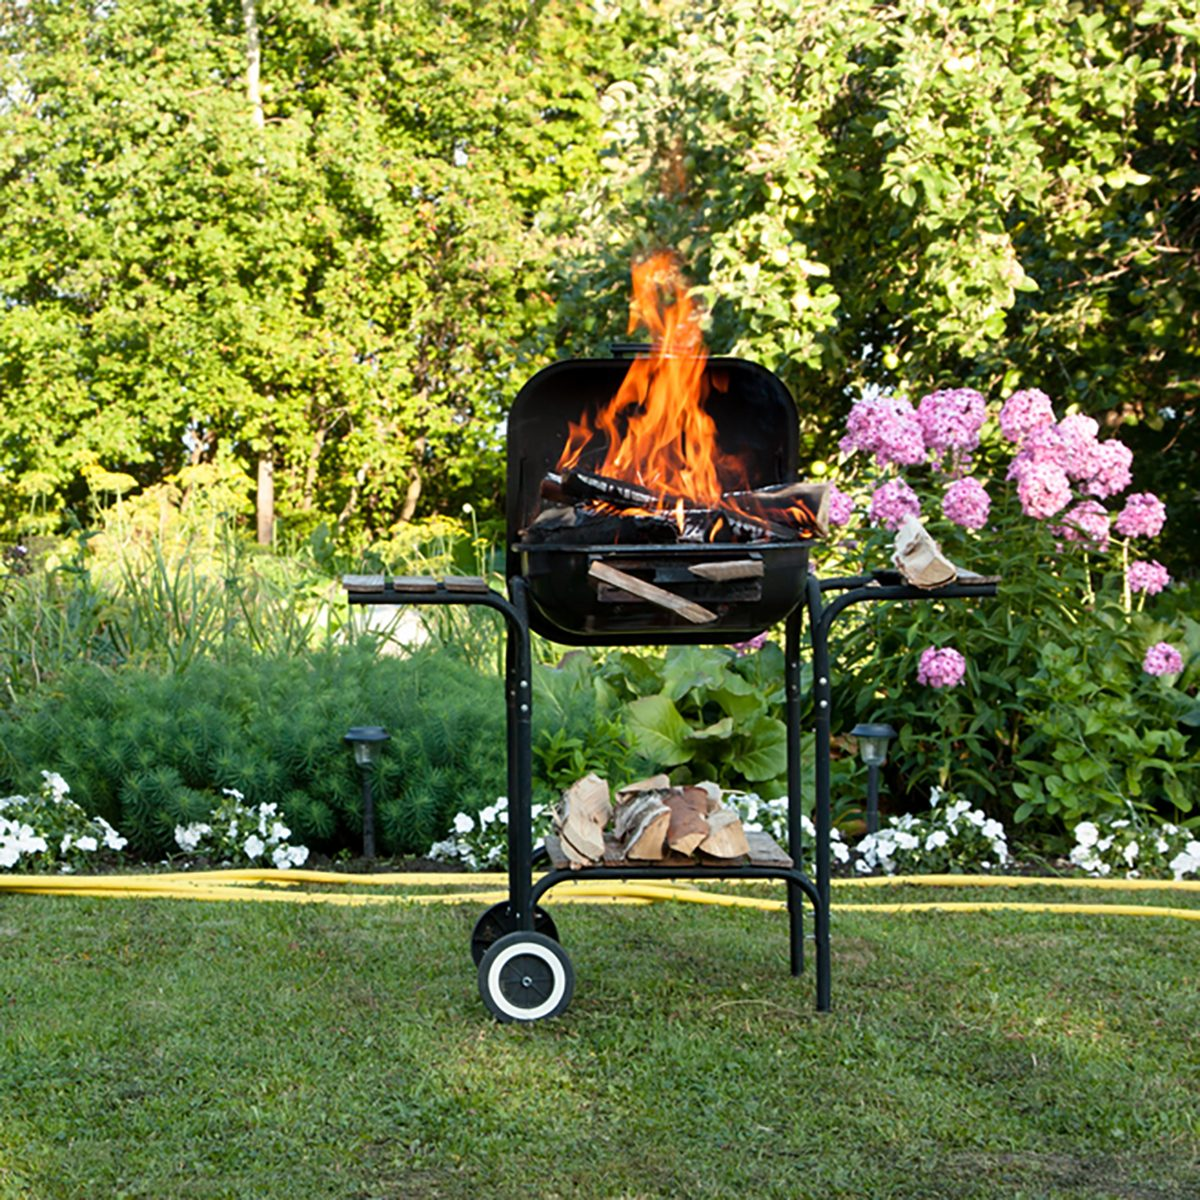 Flames burning in a barbecue standing in a pretty garden as the coals are prepared for grilling an array of meat for a lunchtime cookout;